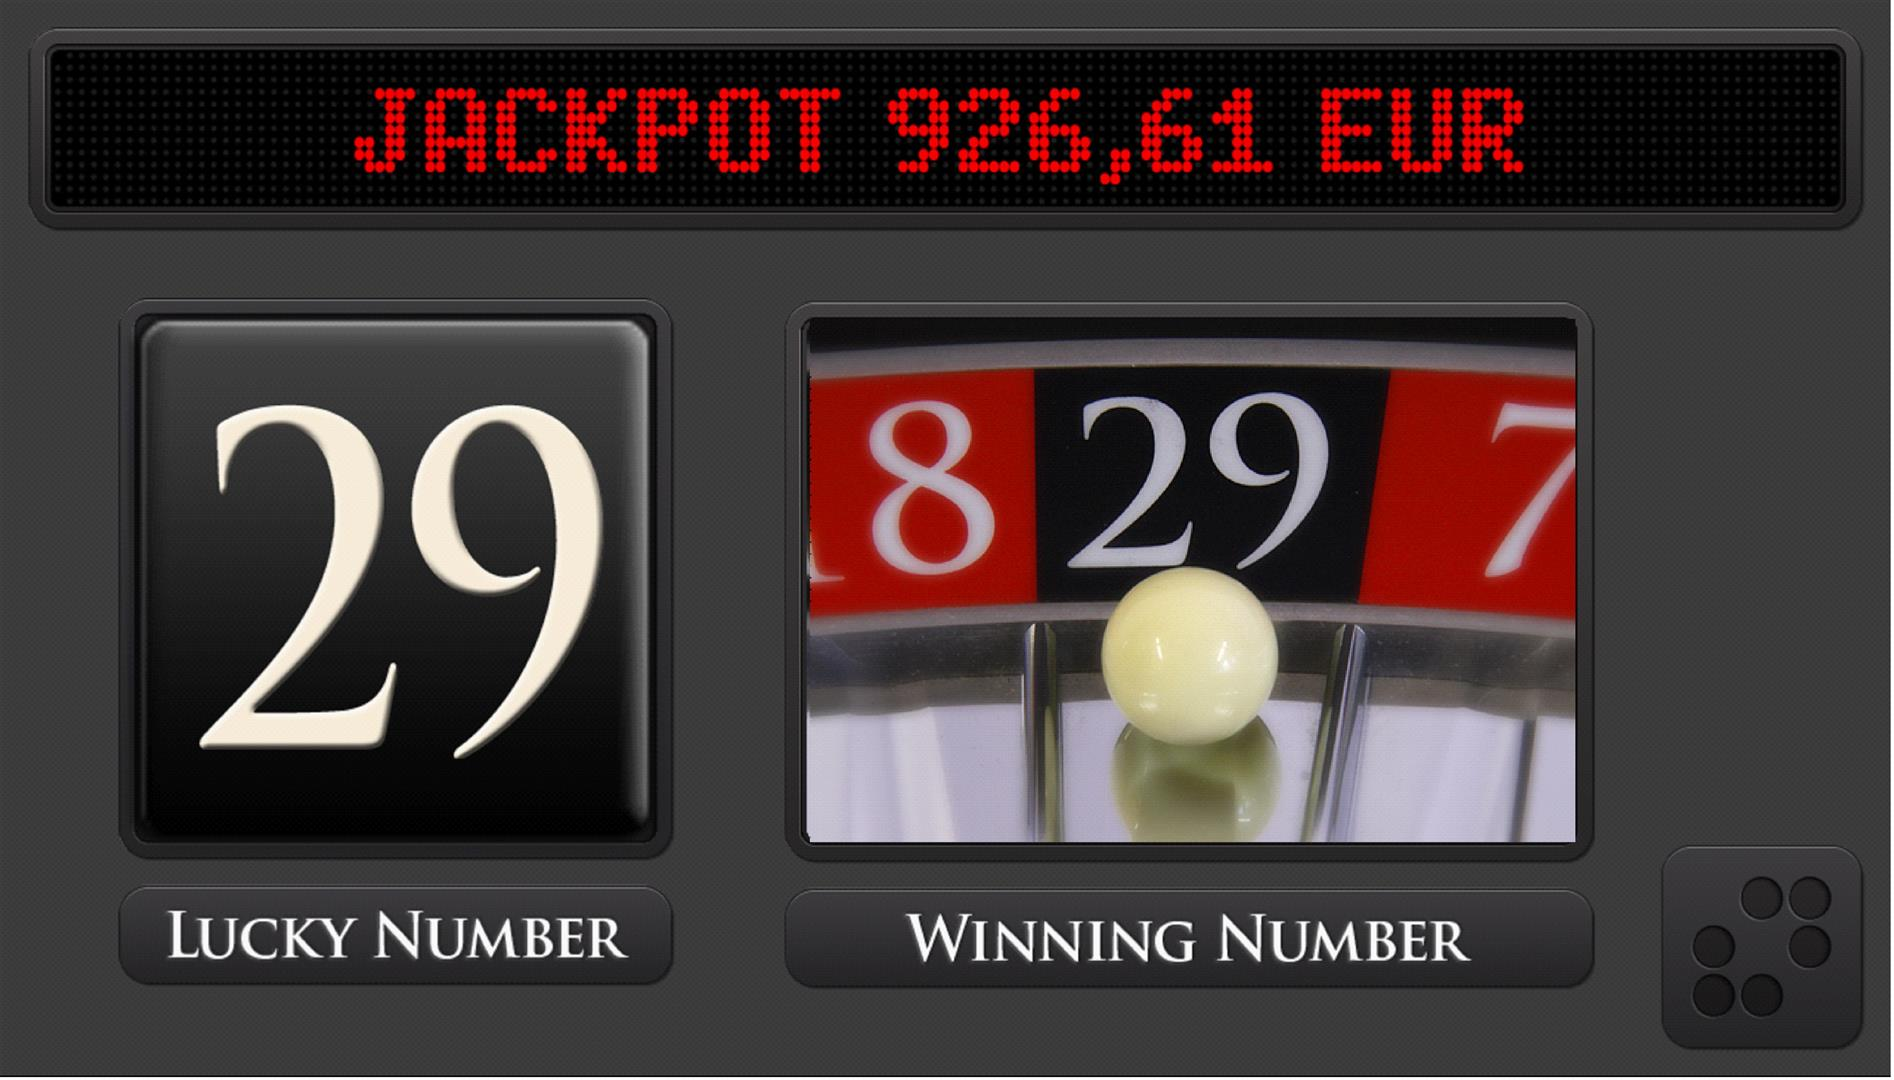 roulette machine jackpot winning number